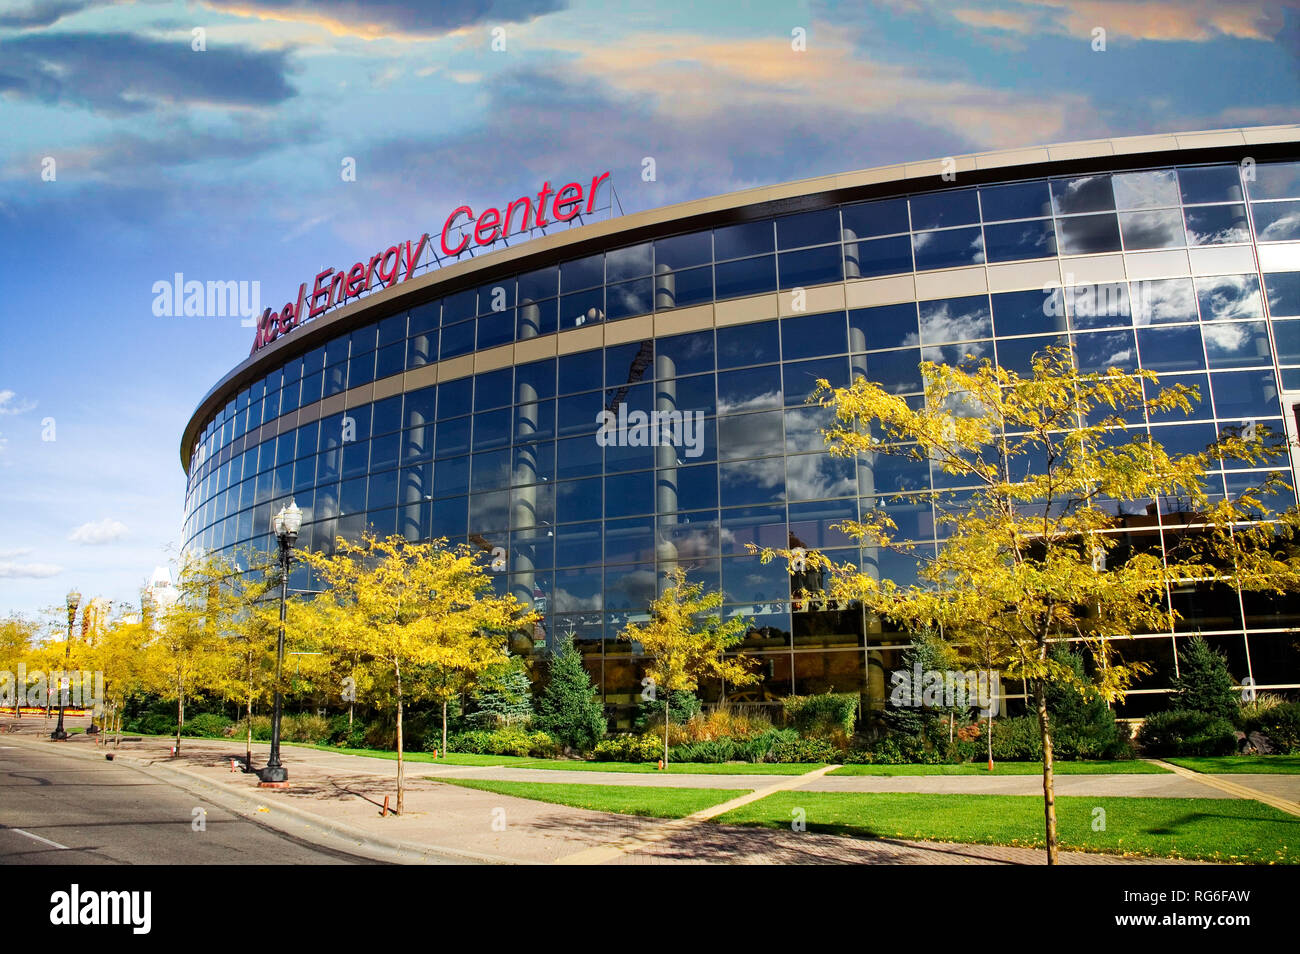 The Excel Energy Center is home to the Minnesota Wild Hockey team and serves as a venue to many concerts and events. St. Paul, Minnesota. - Stock Image